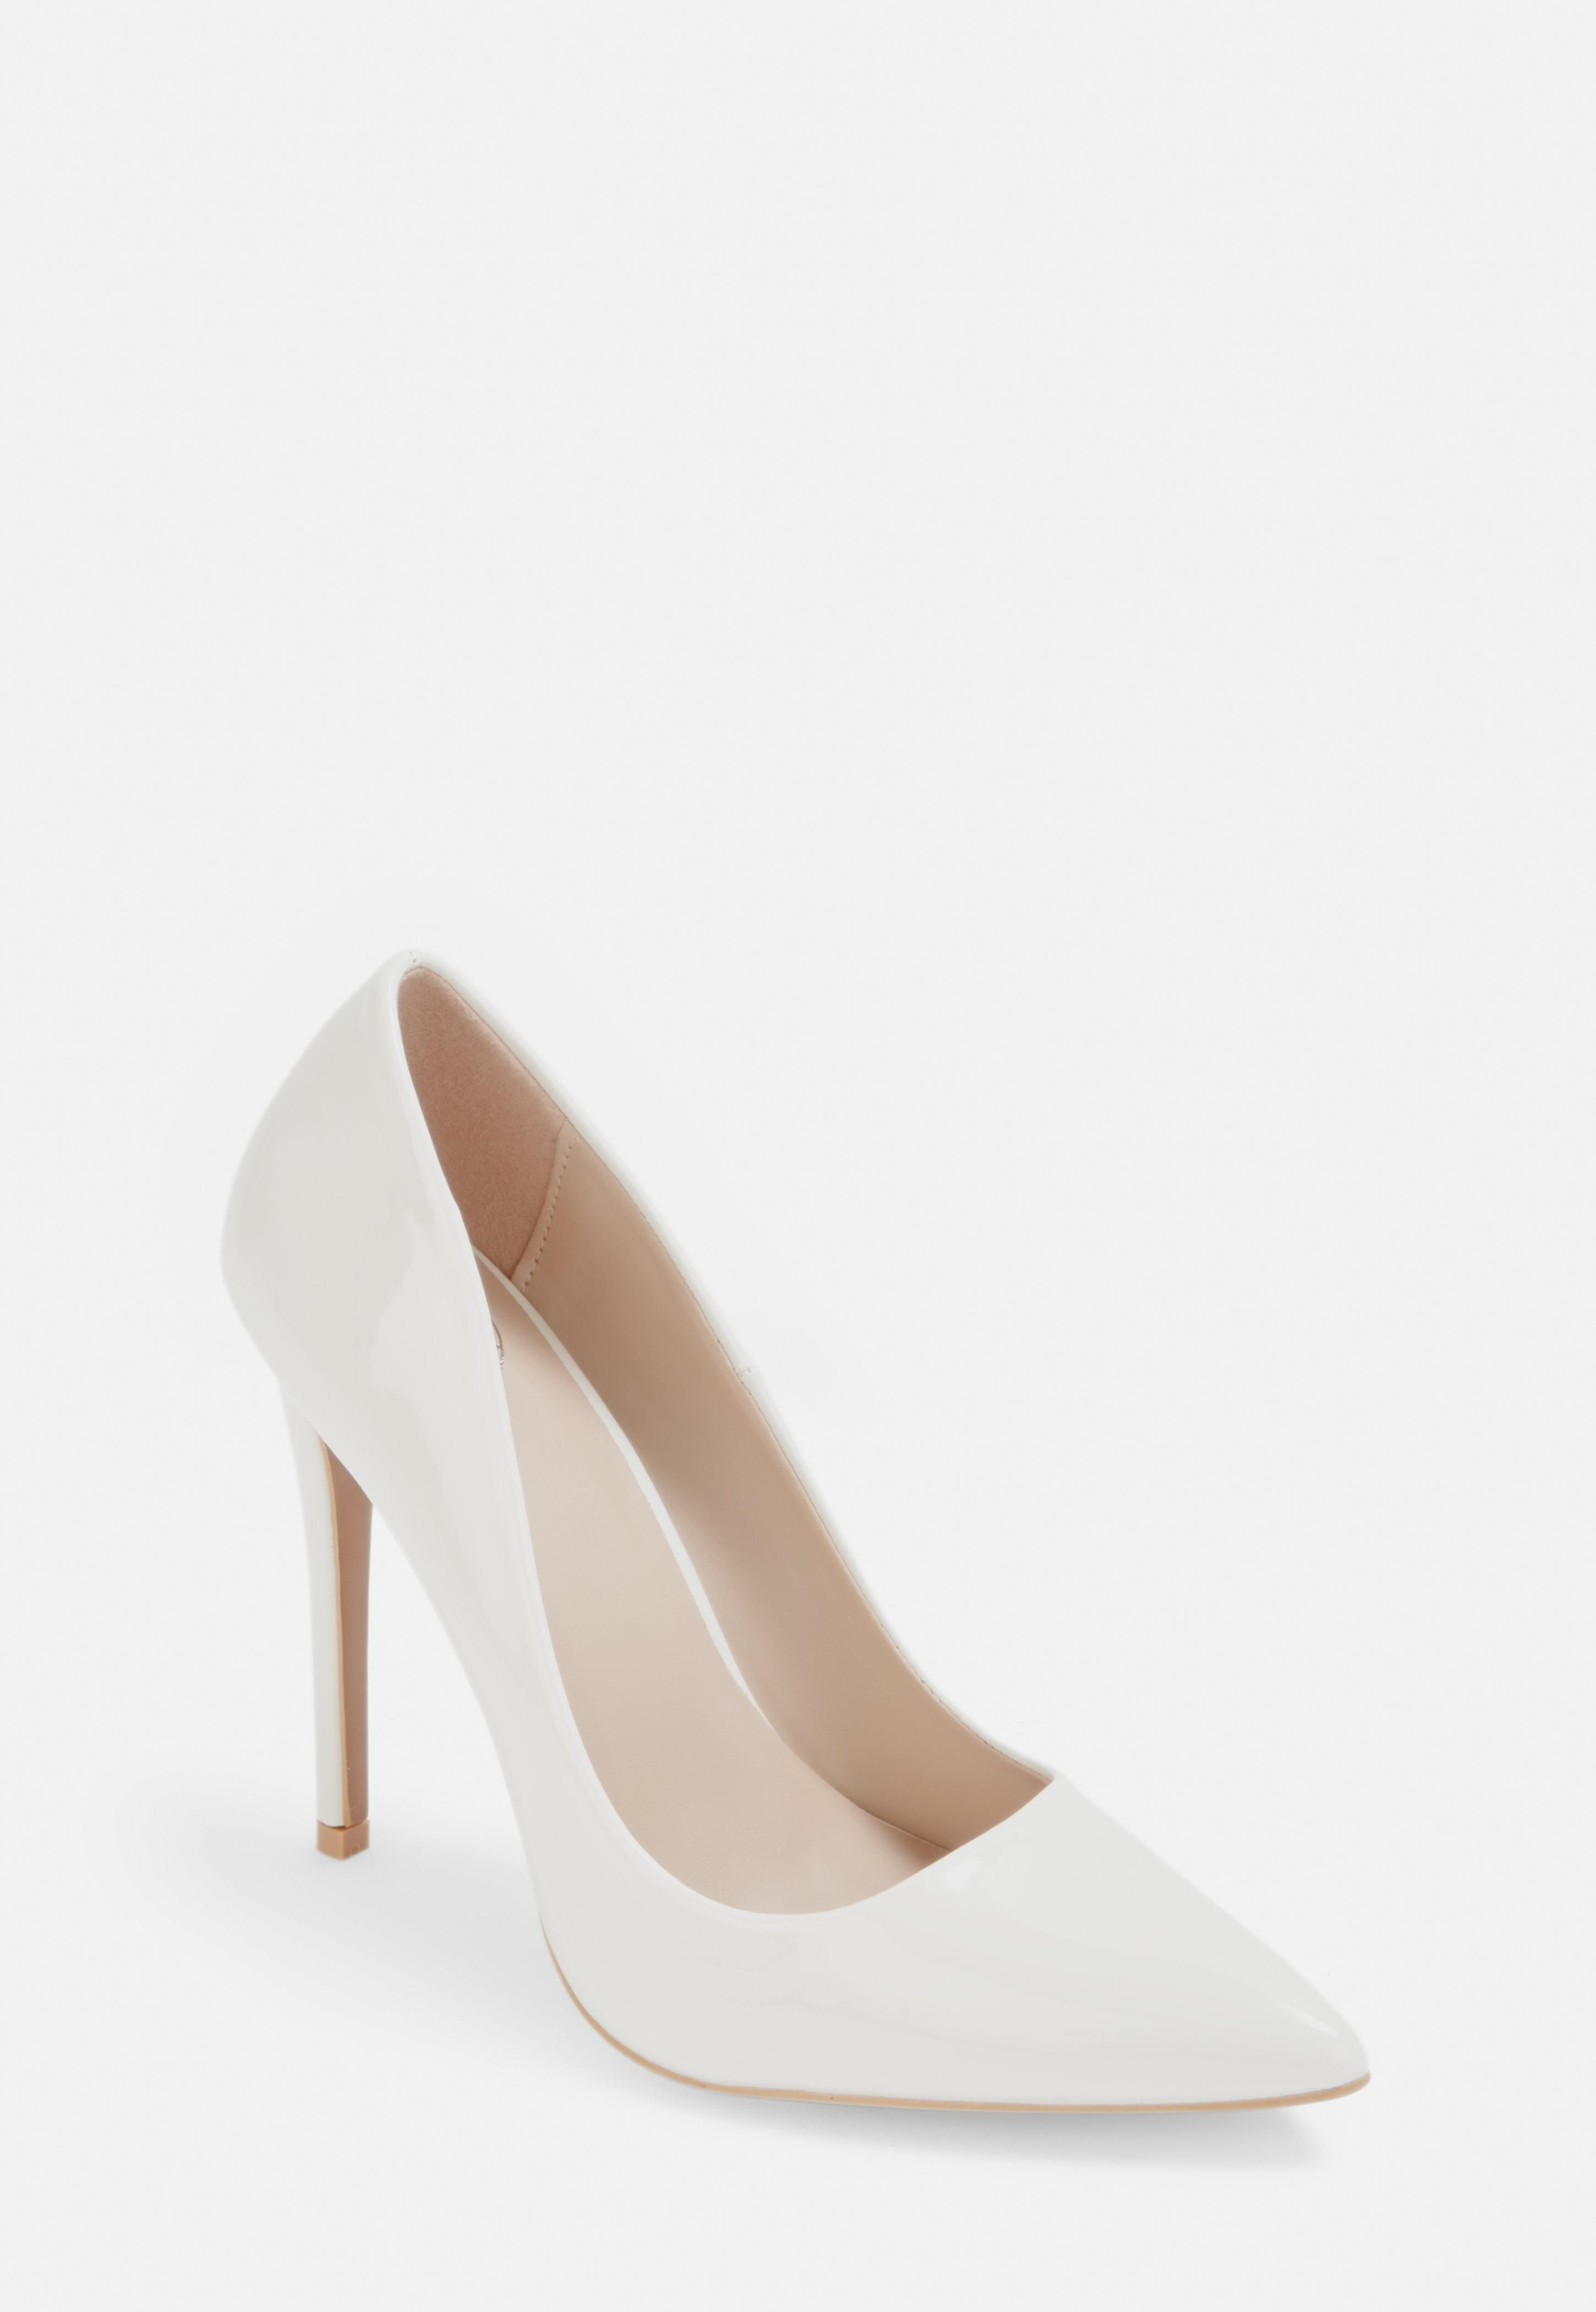 White Shoes With Heels en 2020